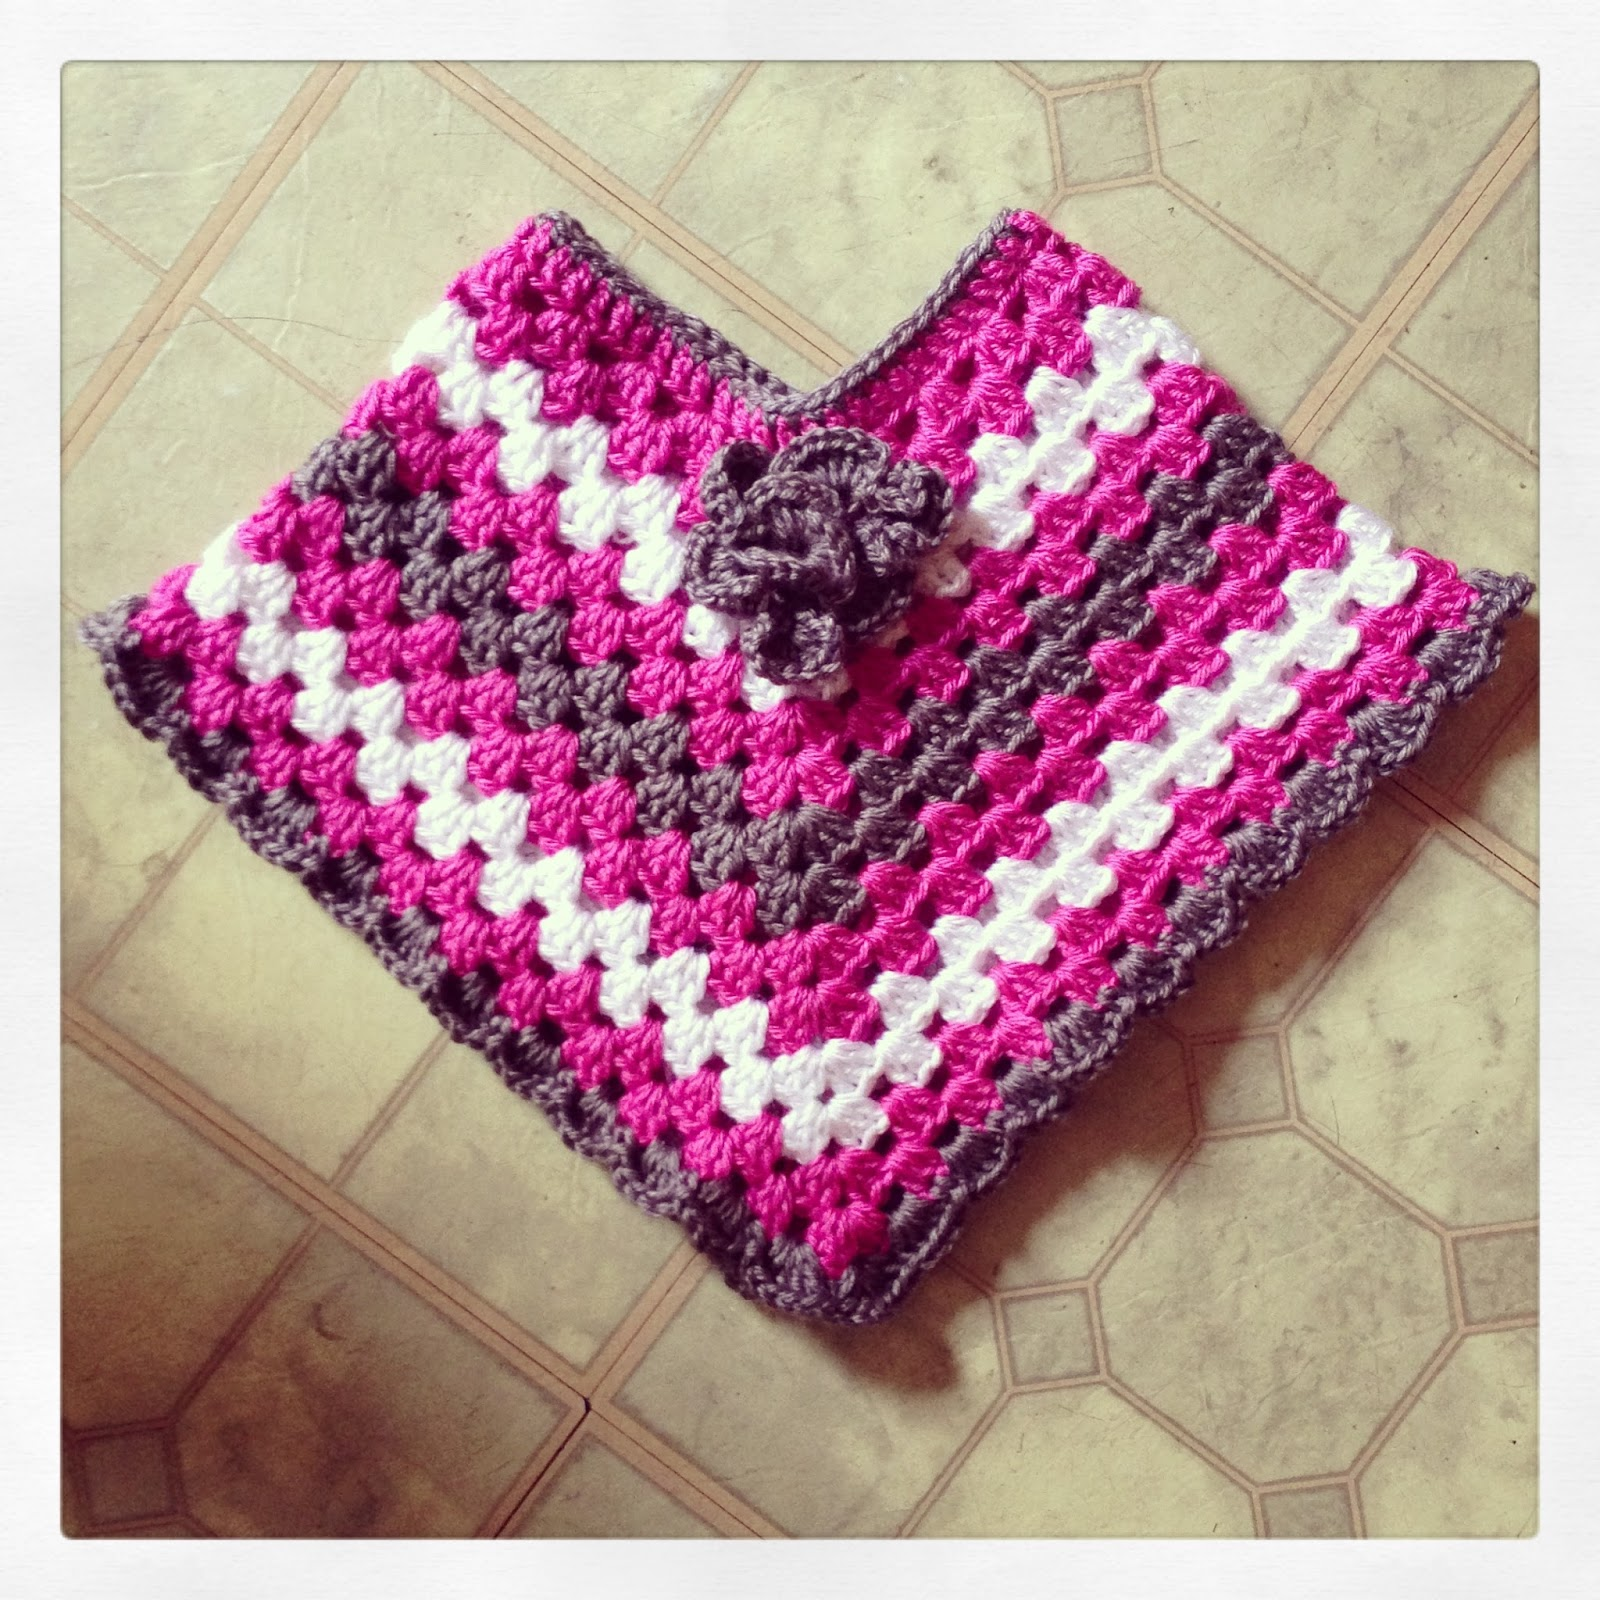 Crochet Baby Poncho Tutorial: Sooz in the shed fringed baby poncho ...